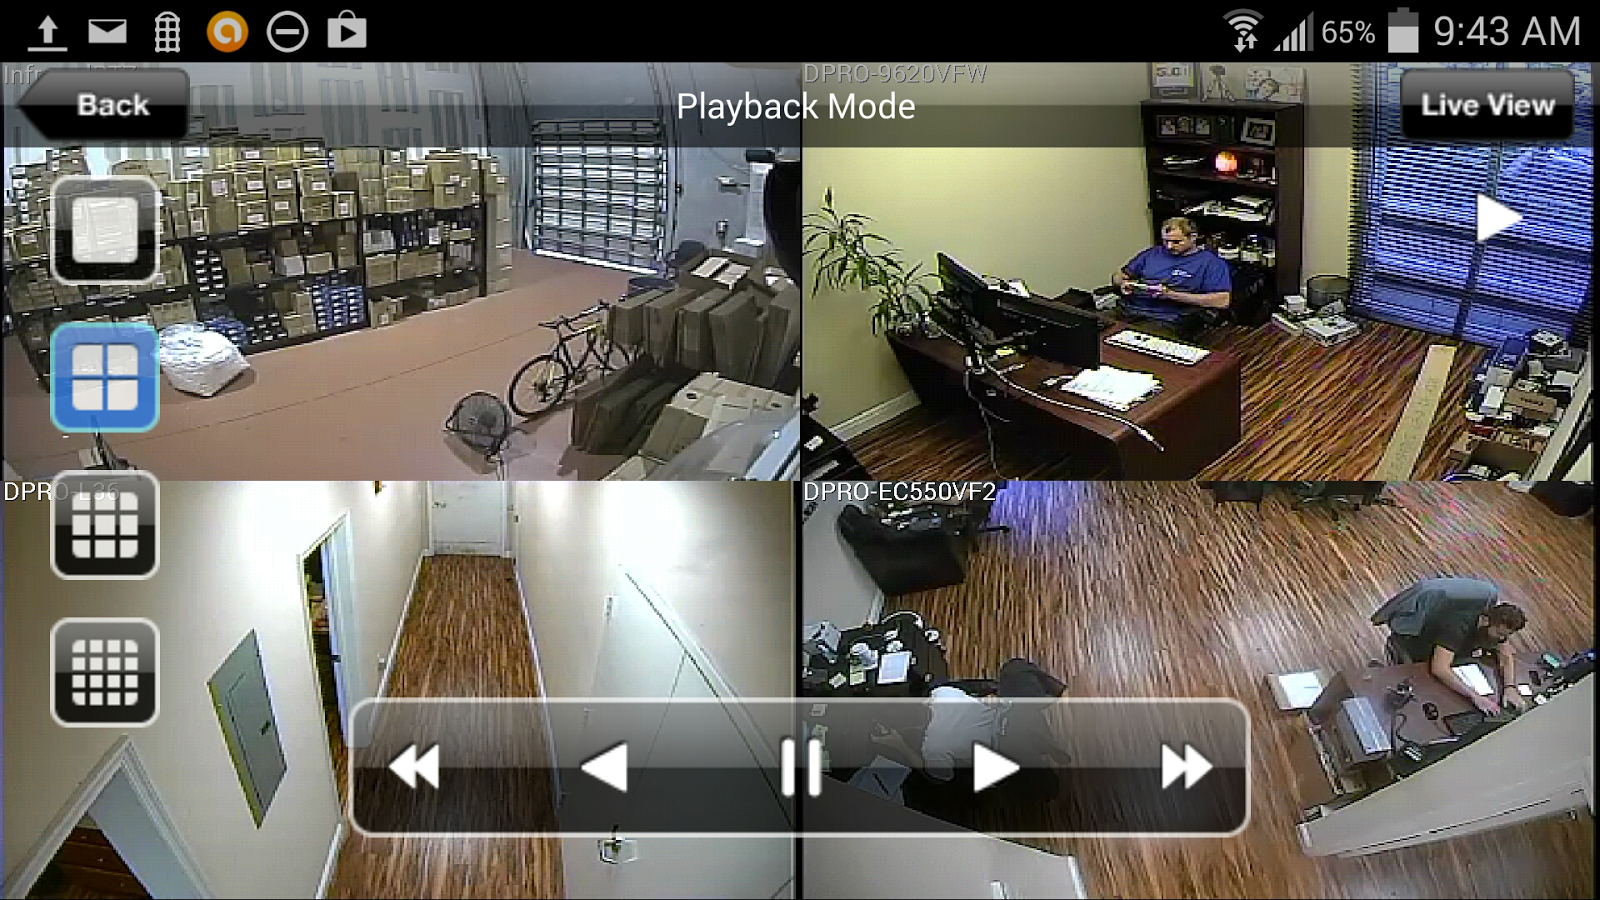 Idvr pro viewer cctv dvr app android apps on google play for Ip camera design tool